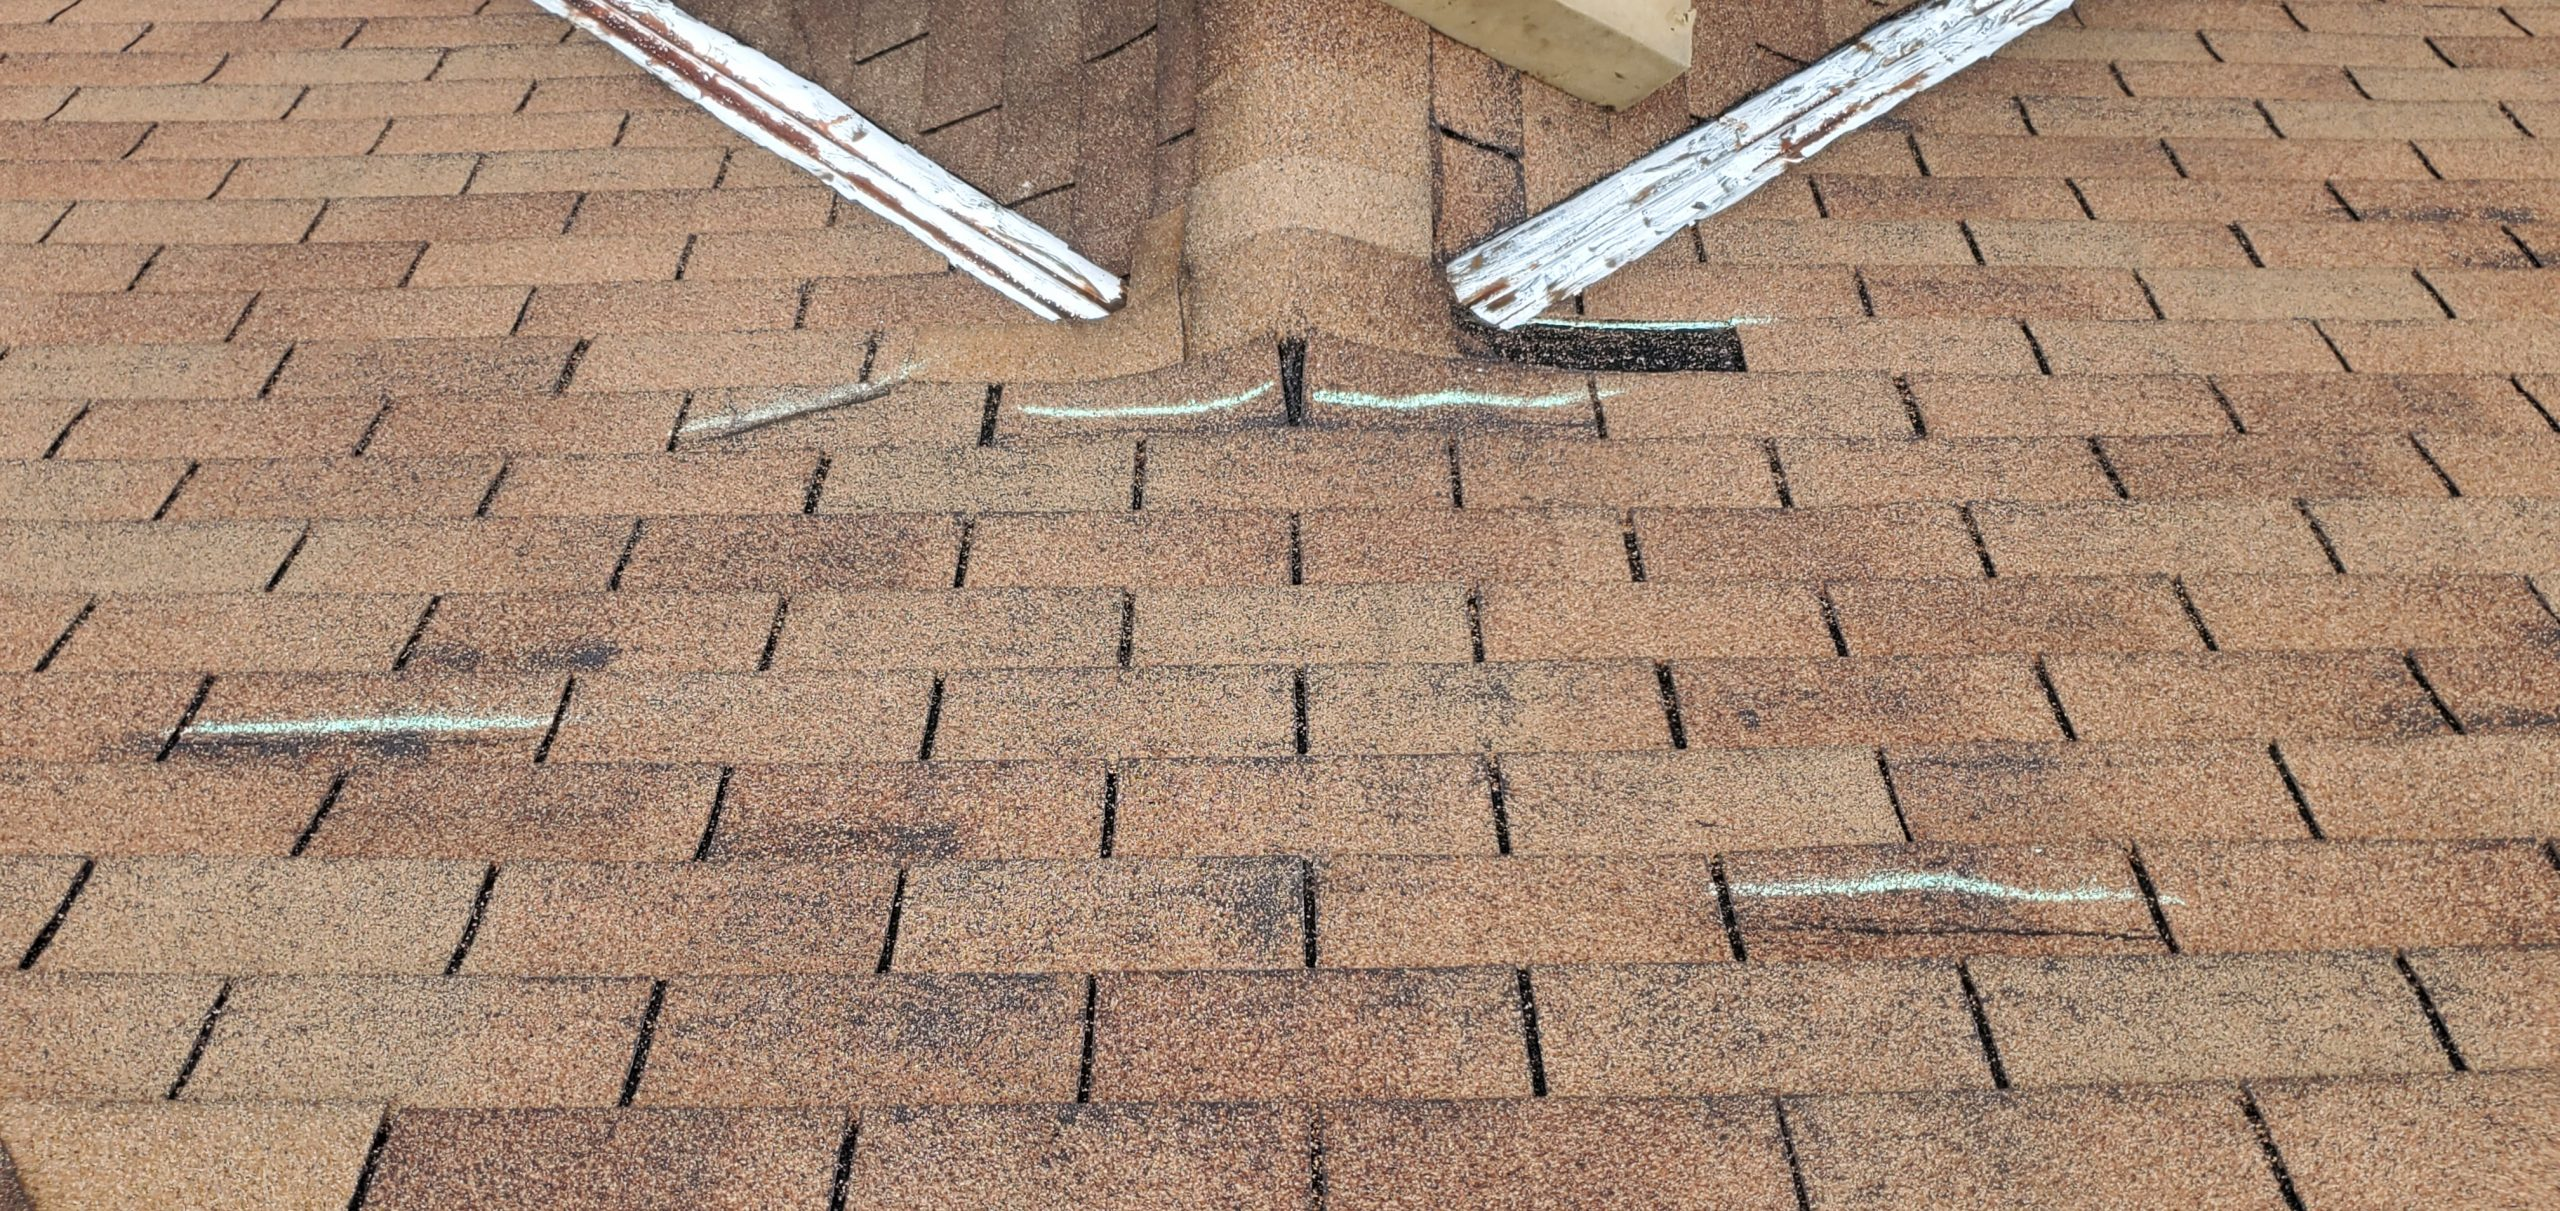 this picture shows 5 wind creased roof shingles that can blow off of this roof at any time in knoxville tn